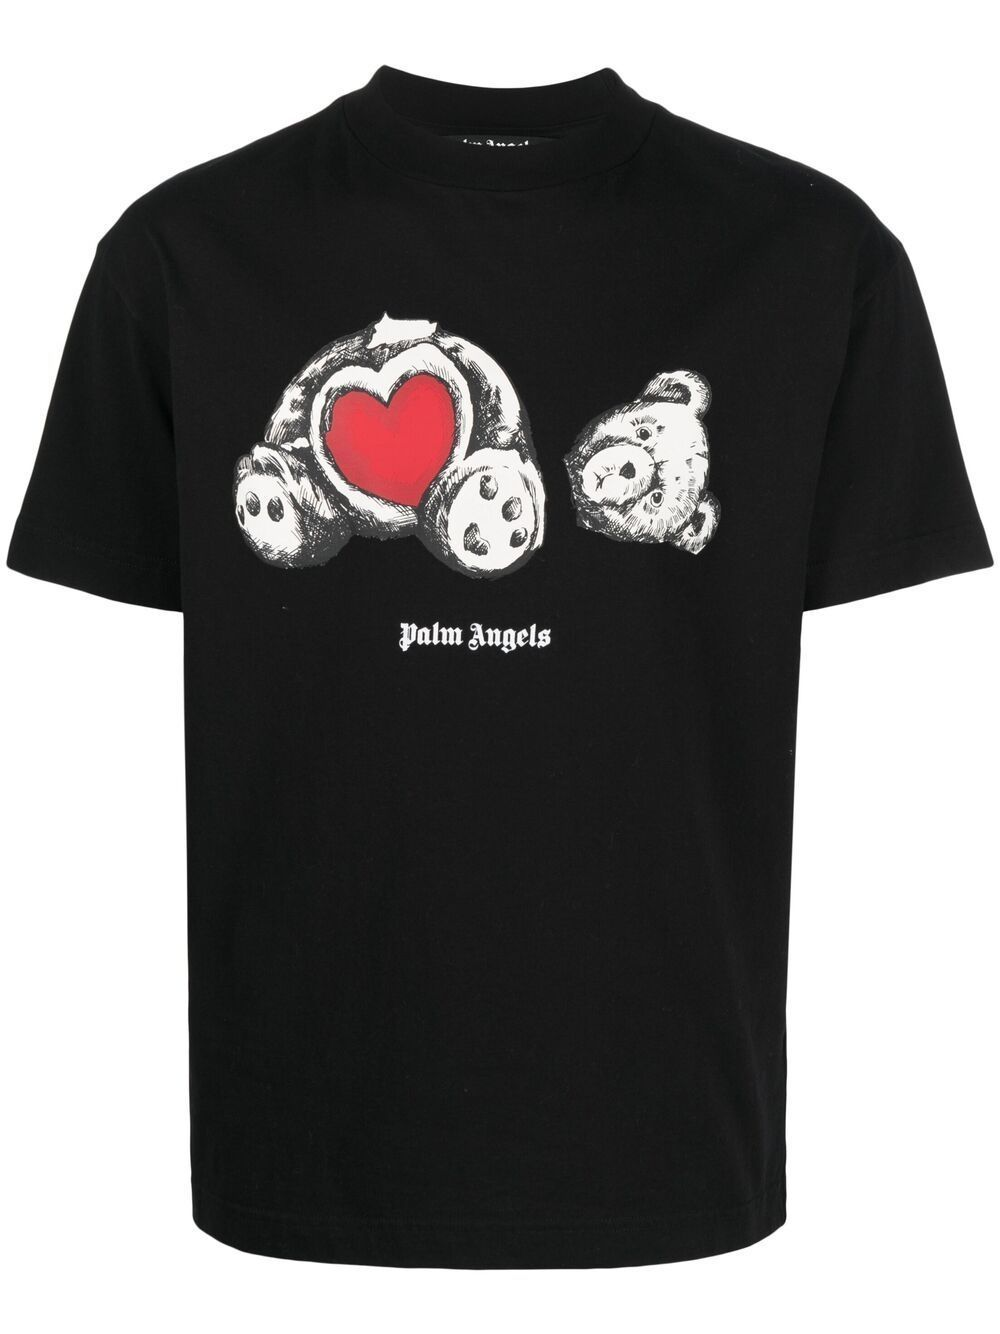 PALM ANGELS Bear In Love Graphic T-Shirt Black